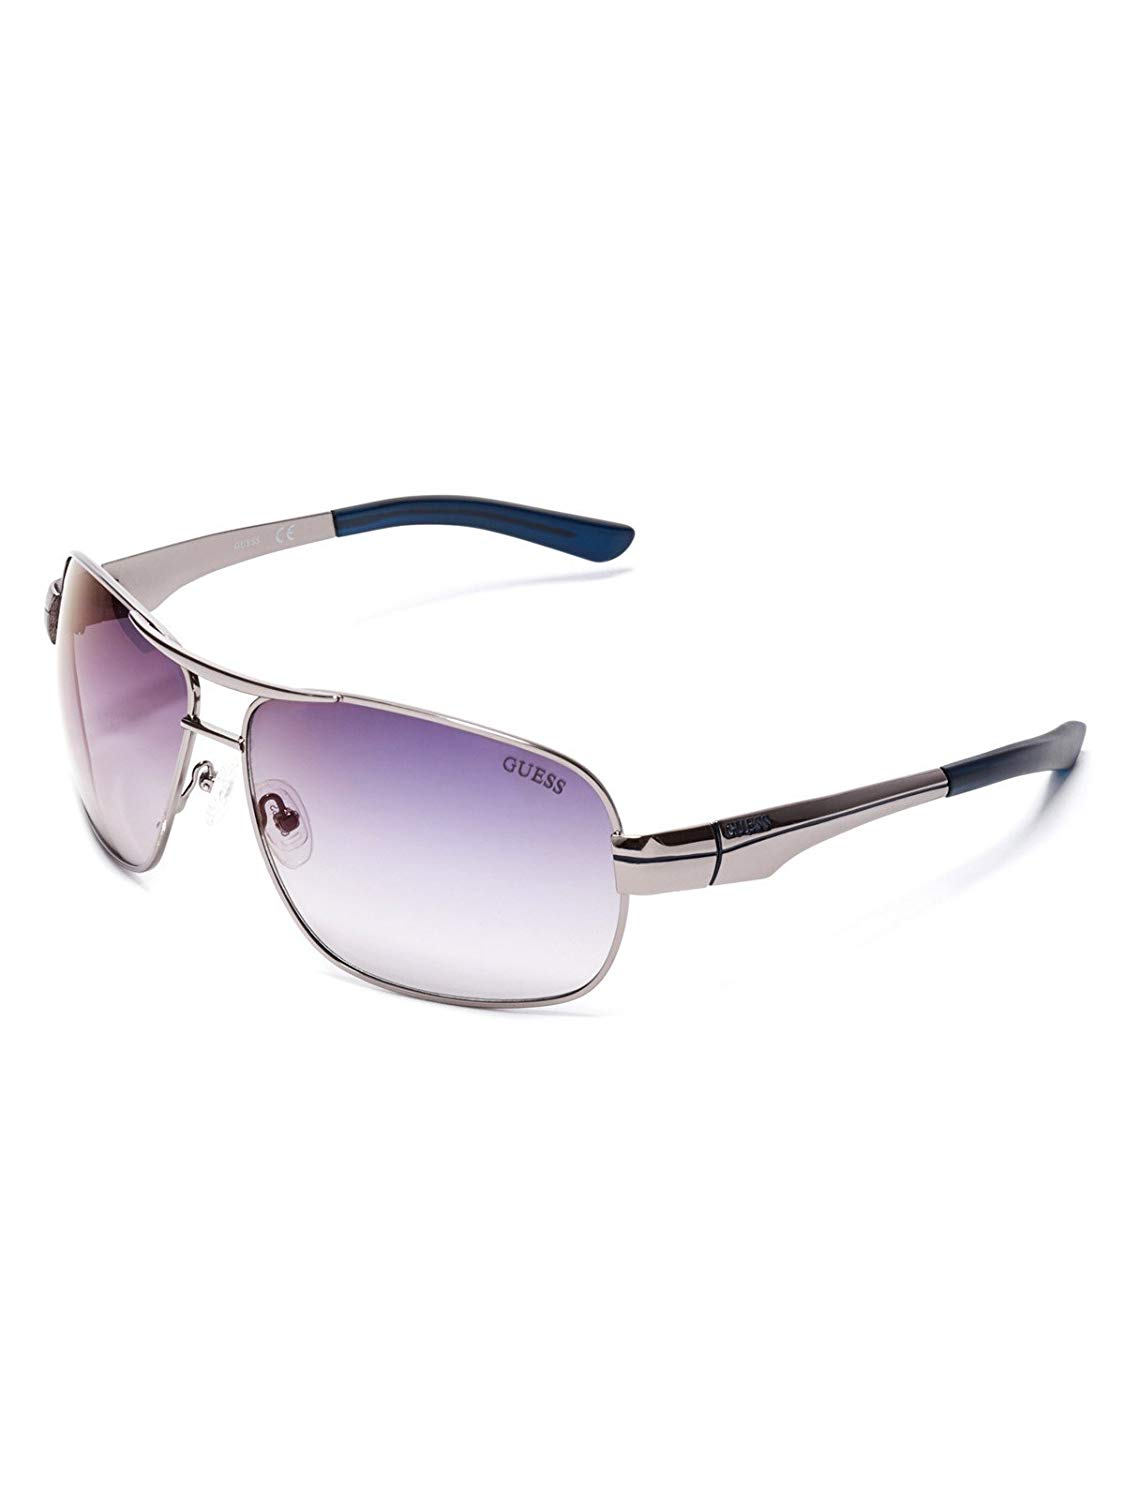 cb03399c11 Get Quotations · GUESS Factory Men s Metal Navigator Sunglasses